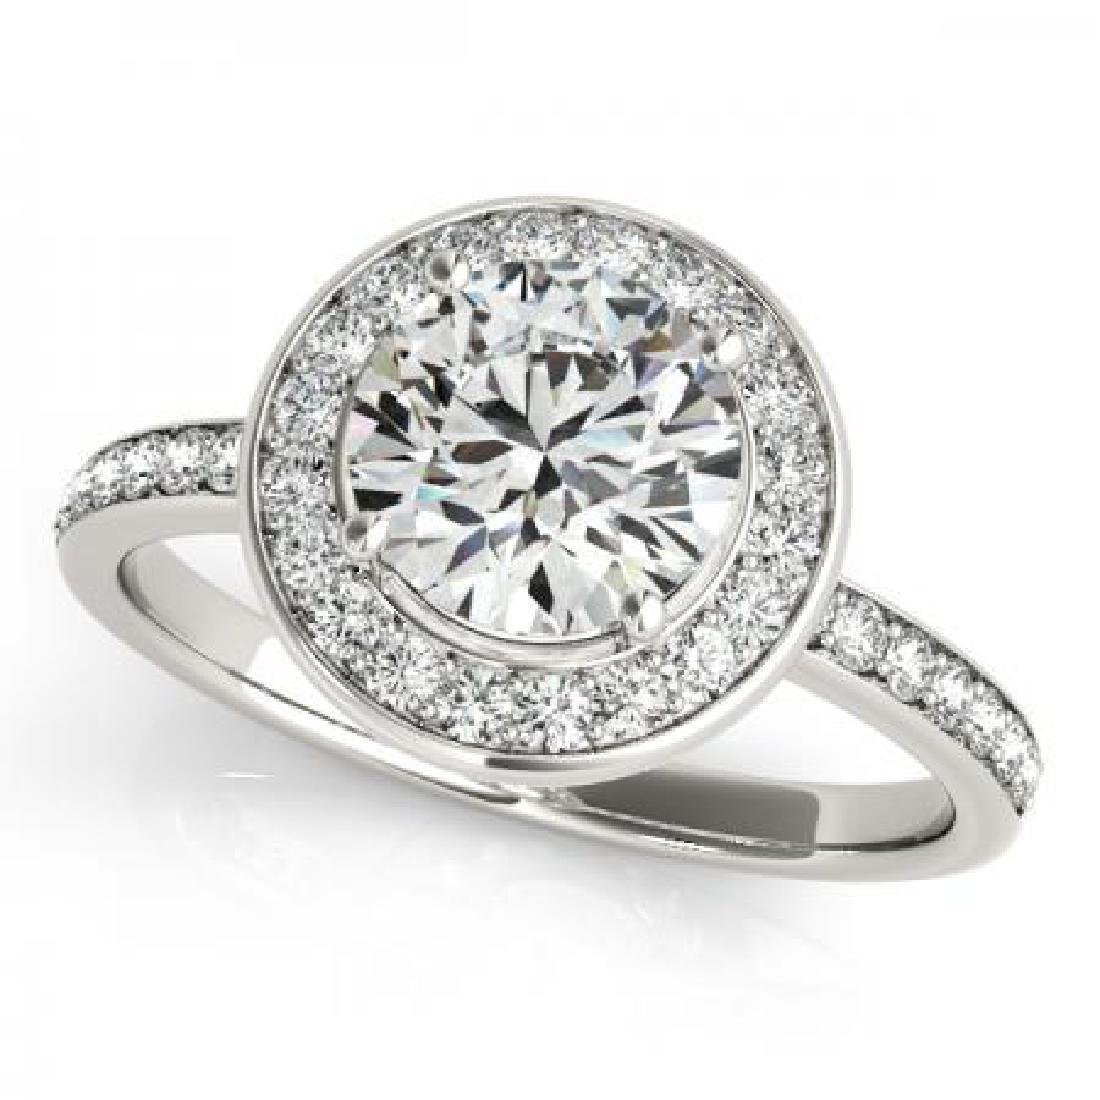 CERTIFIED PLATINUM 1.54 CT G-H/VS-SI1 DIAMOND HALO ENGA